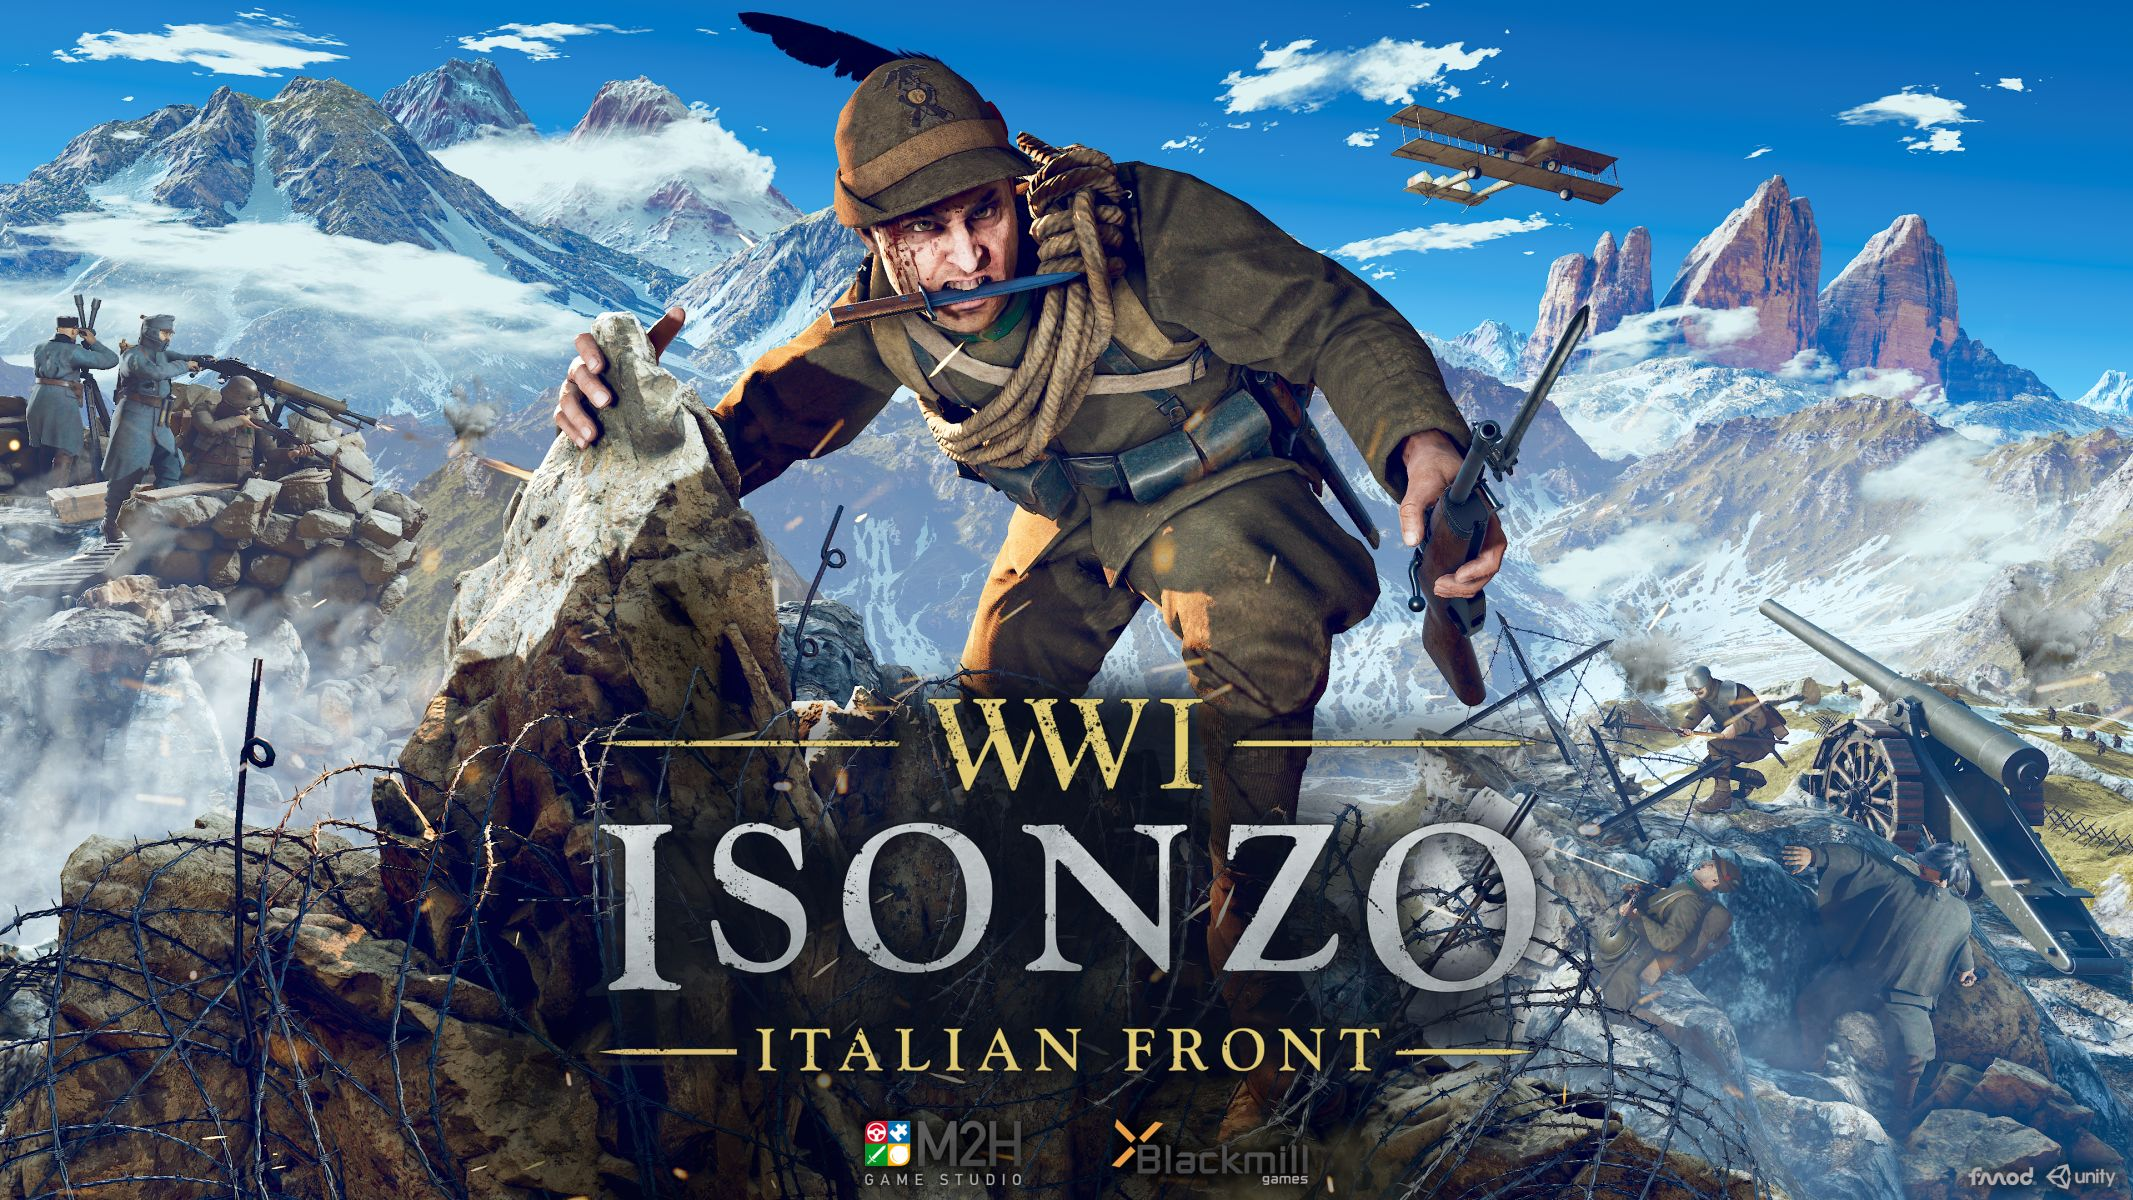 WWI Isonzo Game